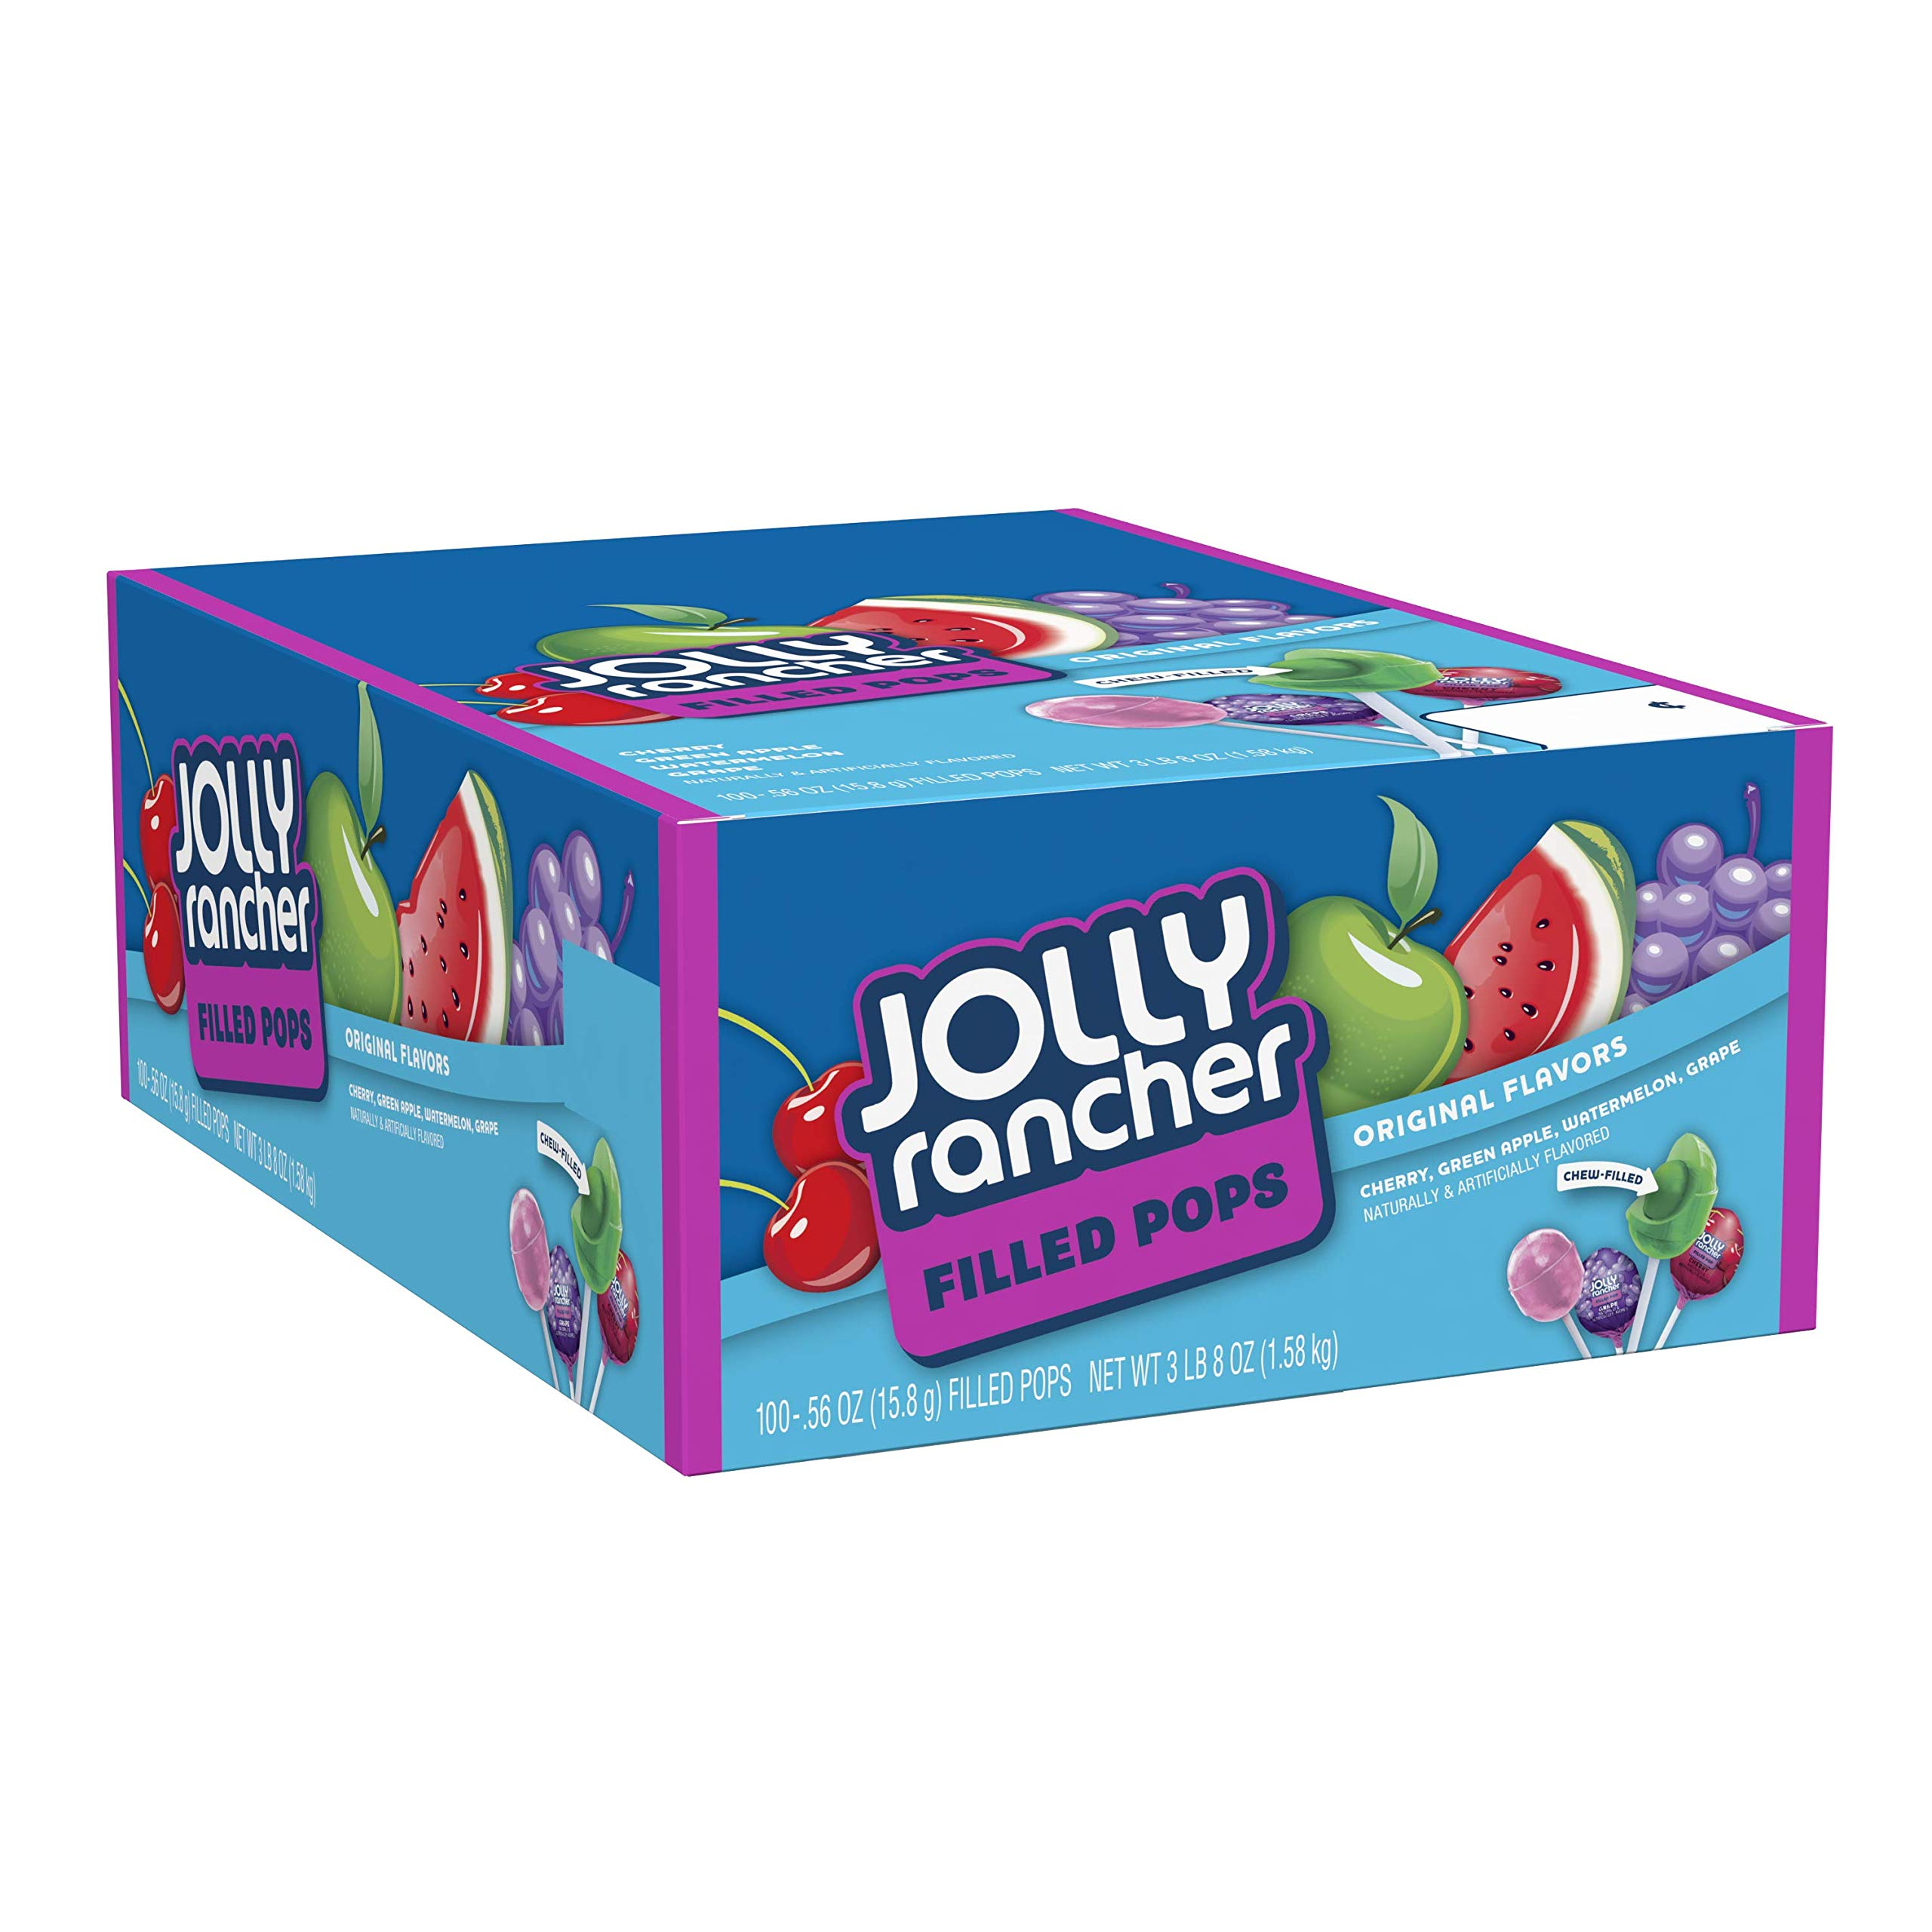 JOLLY RANCHER Filled Candy Lollipops, Assorted Flavors, 100 Count by Jolly Rancher (Image #7)